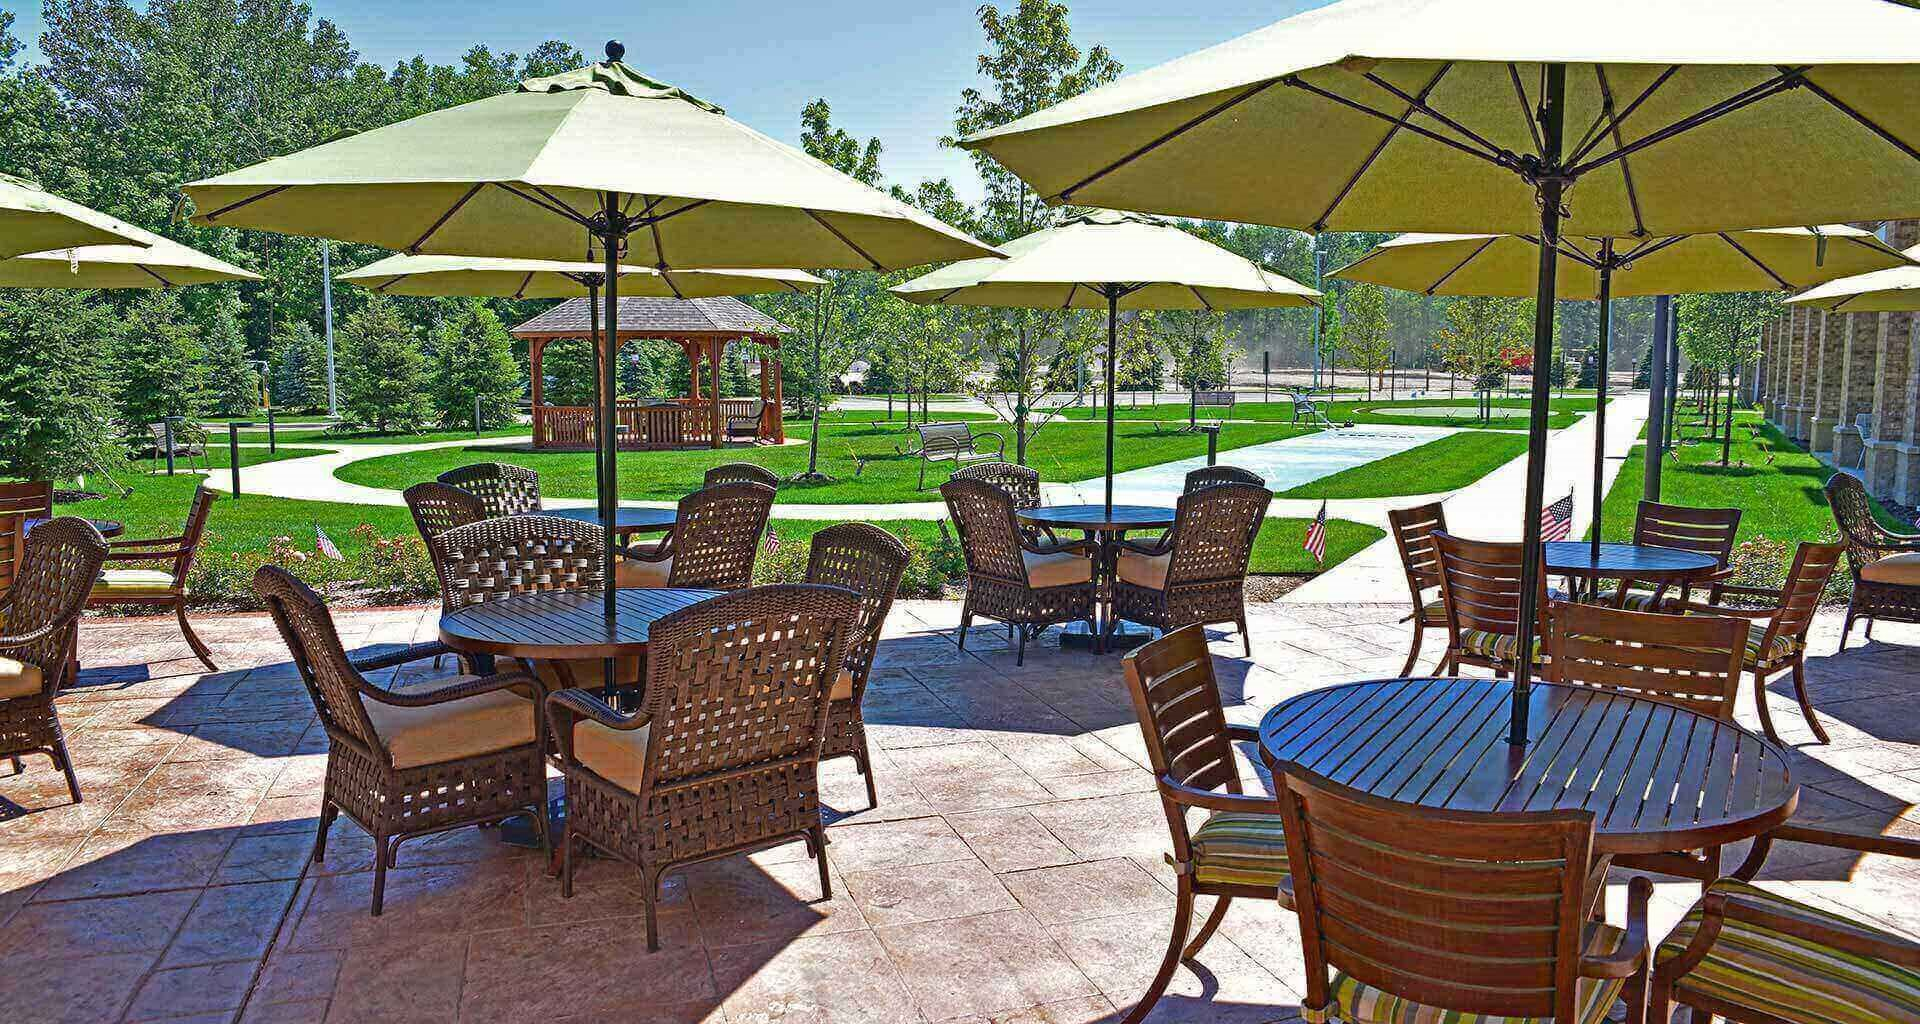 Umbrella Shaded Chairs In Courtyard at Rose Senior Living – Avon, Avon